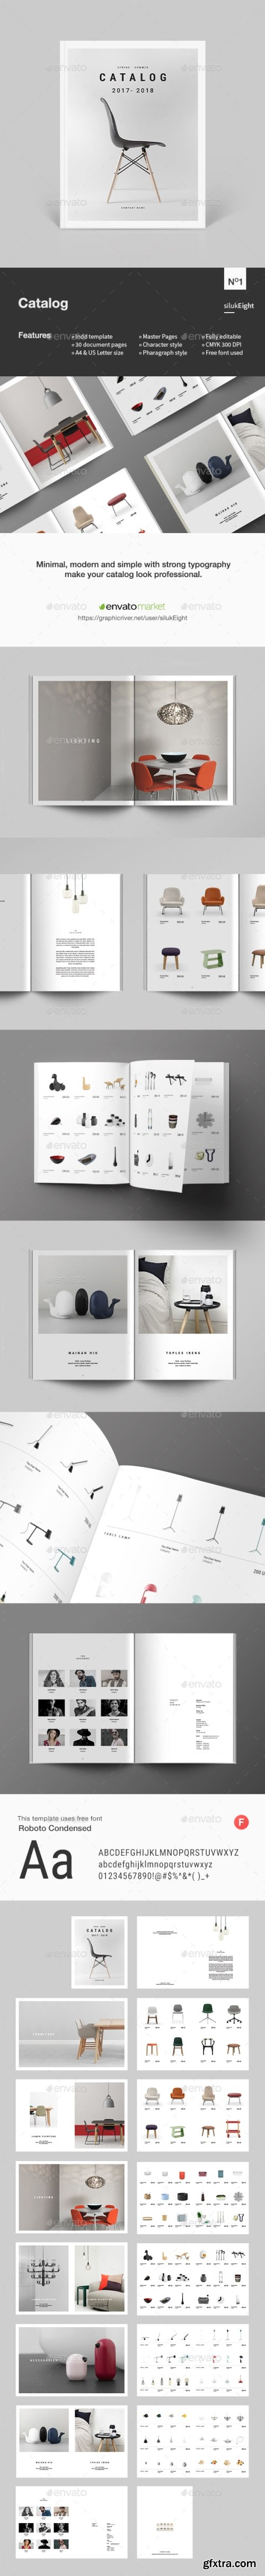 Graphicriver - Product Catalog 19987835